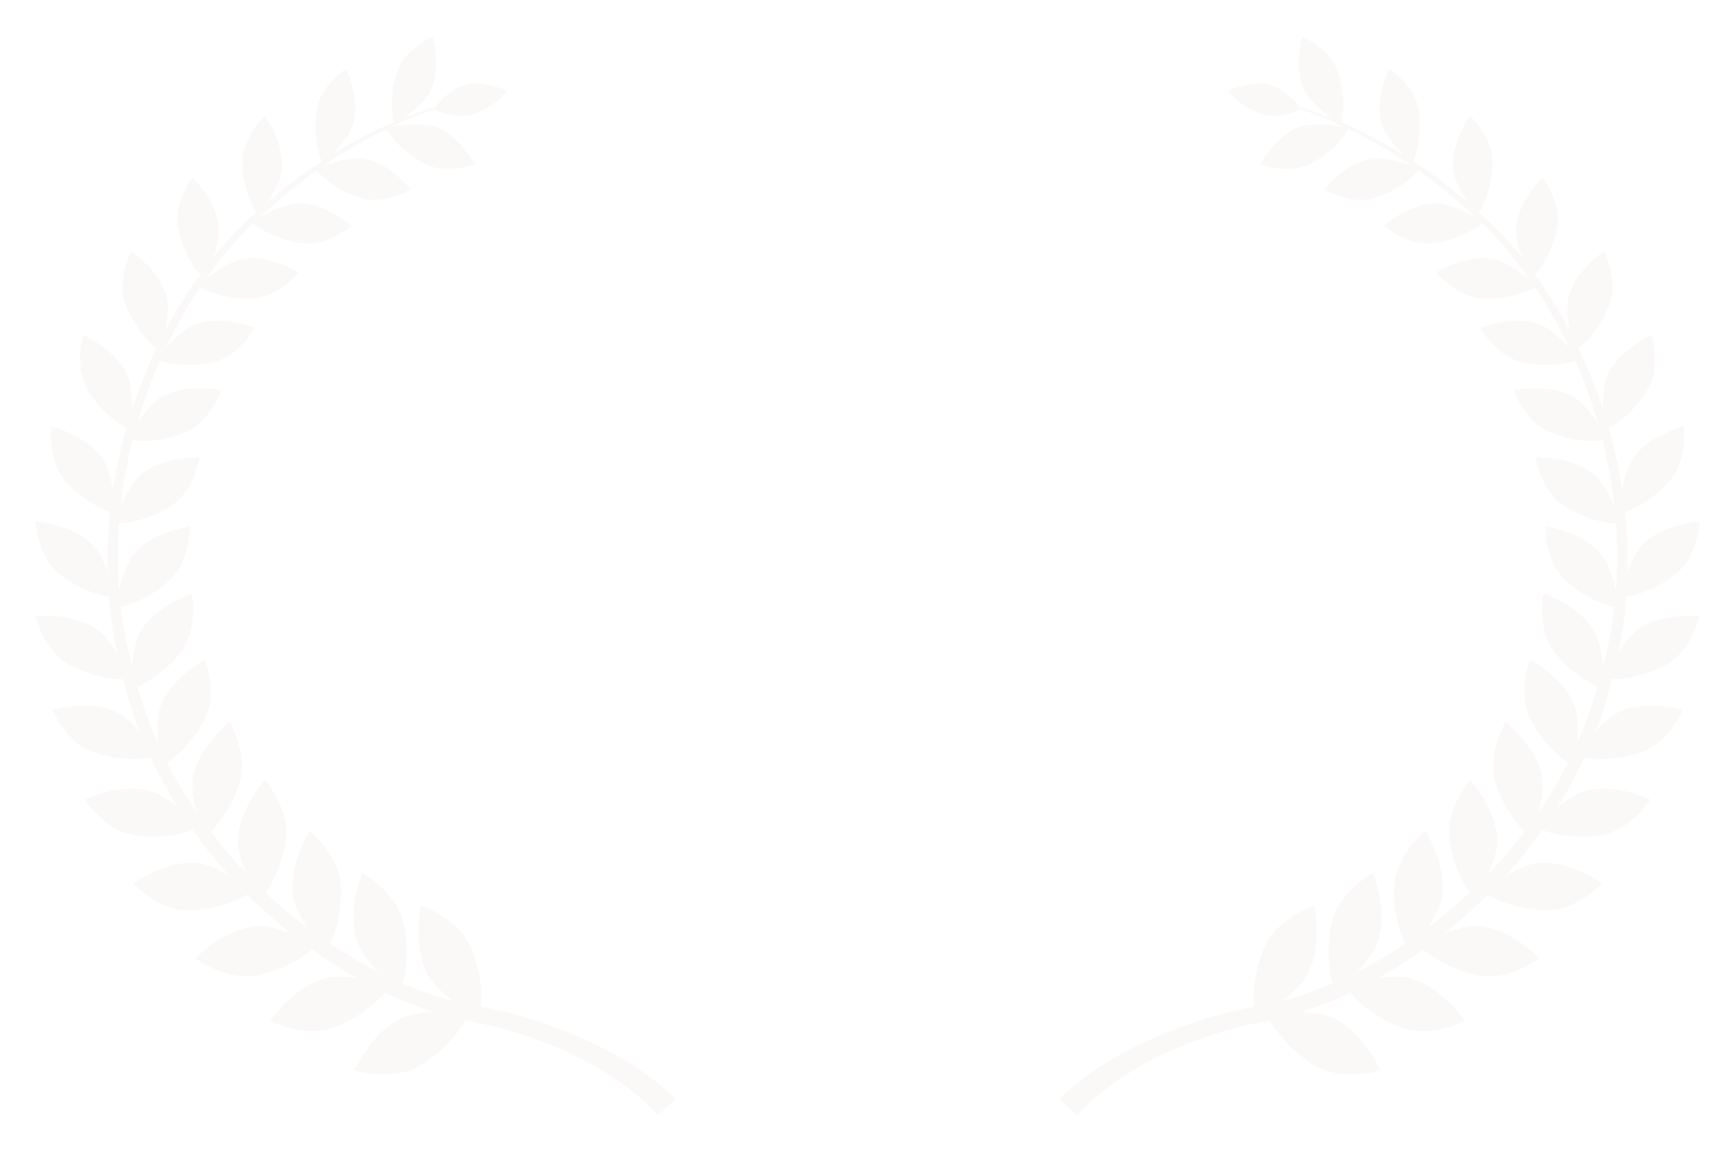 OFFICIAL SELECTION - AWFF Signature Film